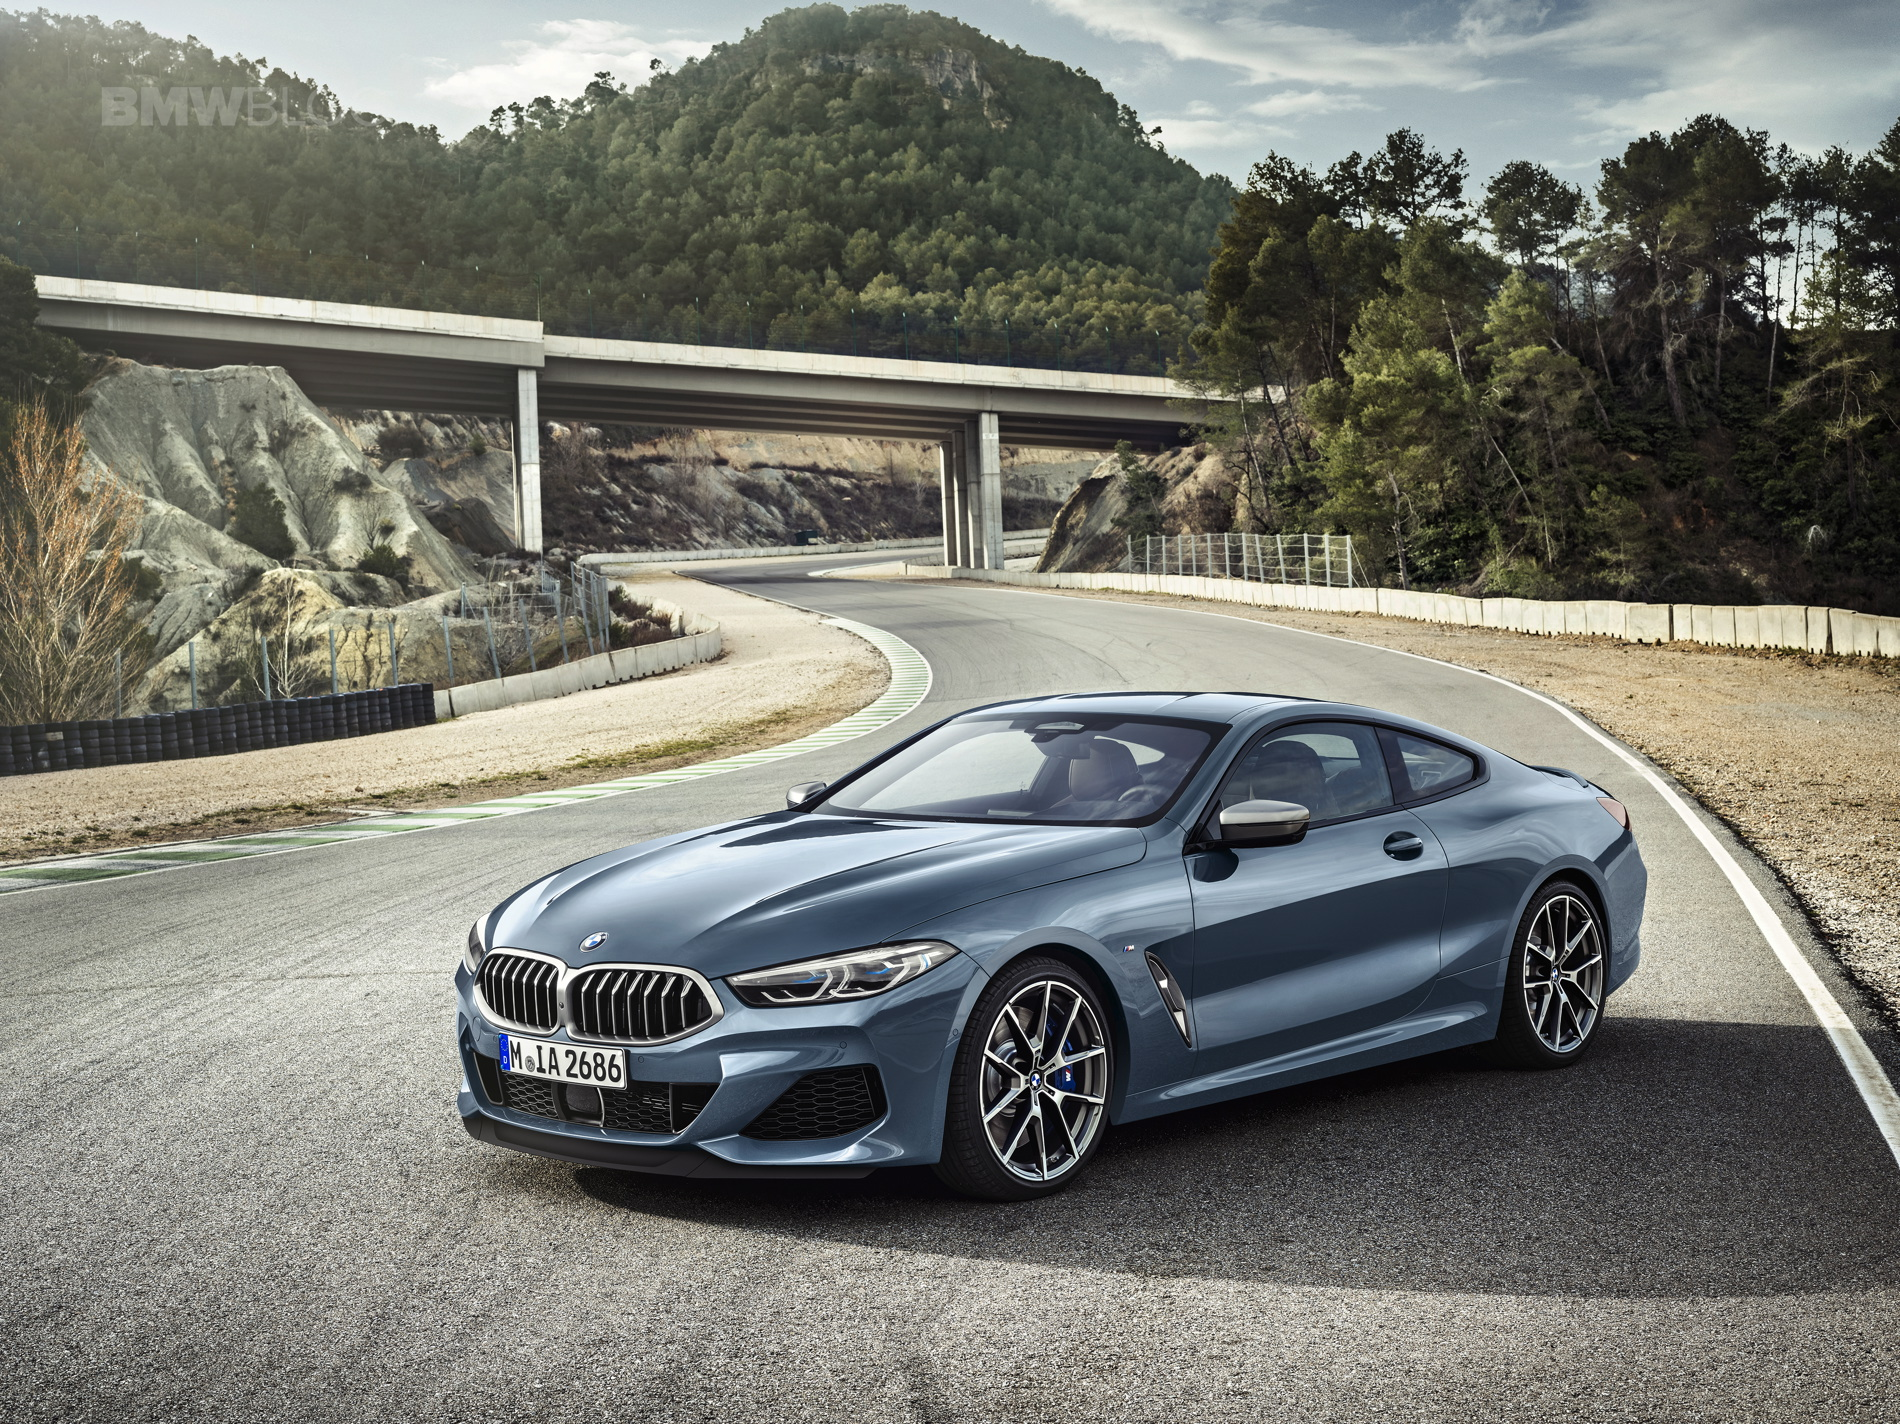 2019 BMW 8 Series Coupe 01